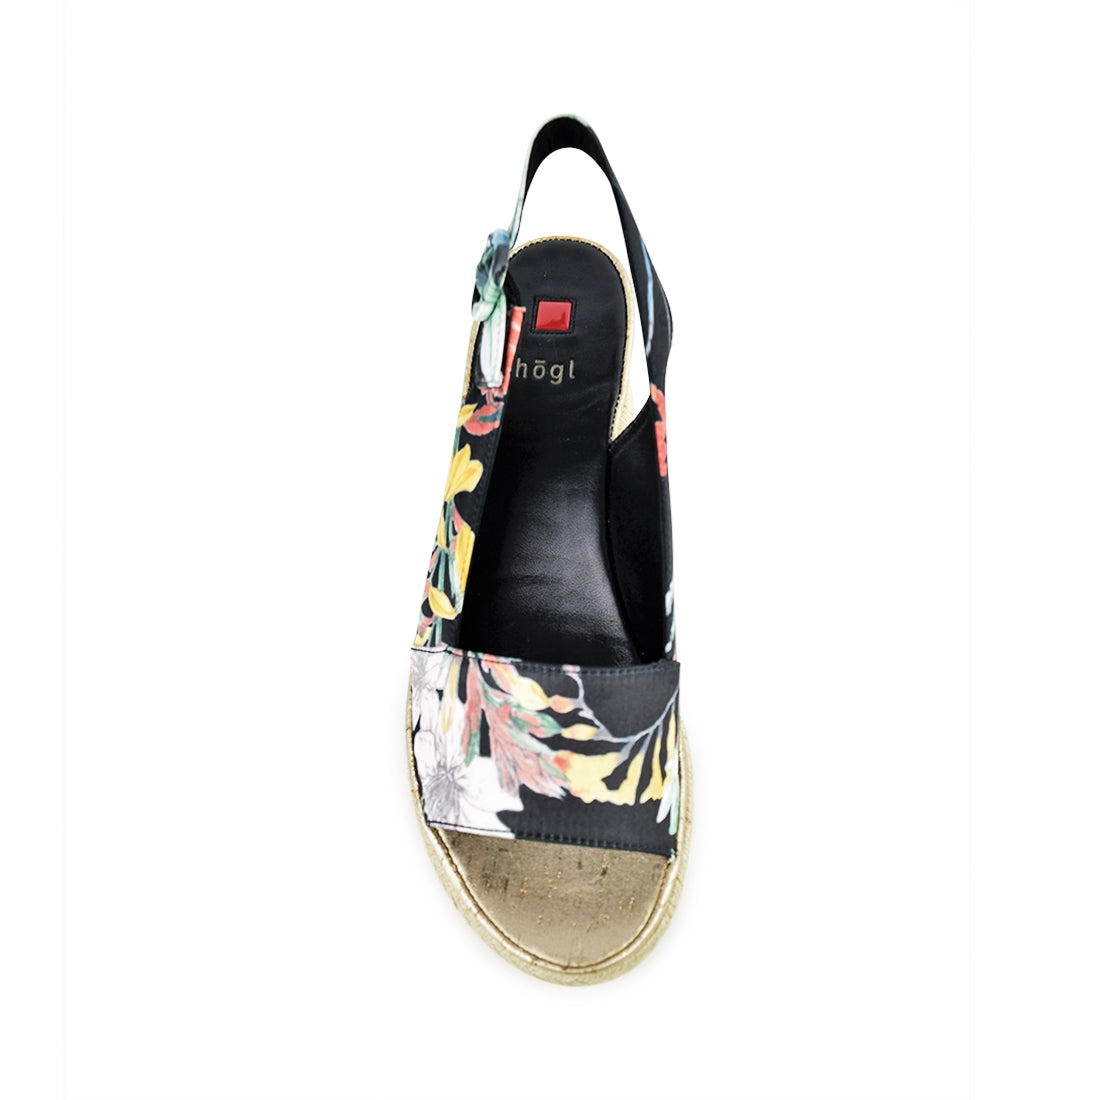 SILK - Hogl Wedge Sandal Black Floral